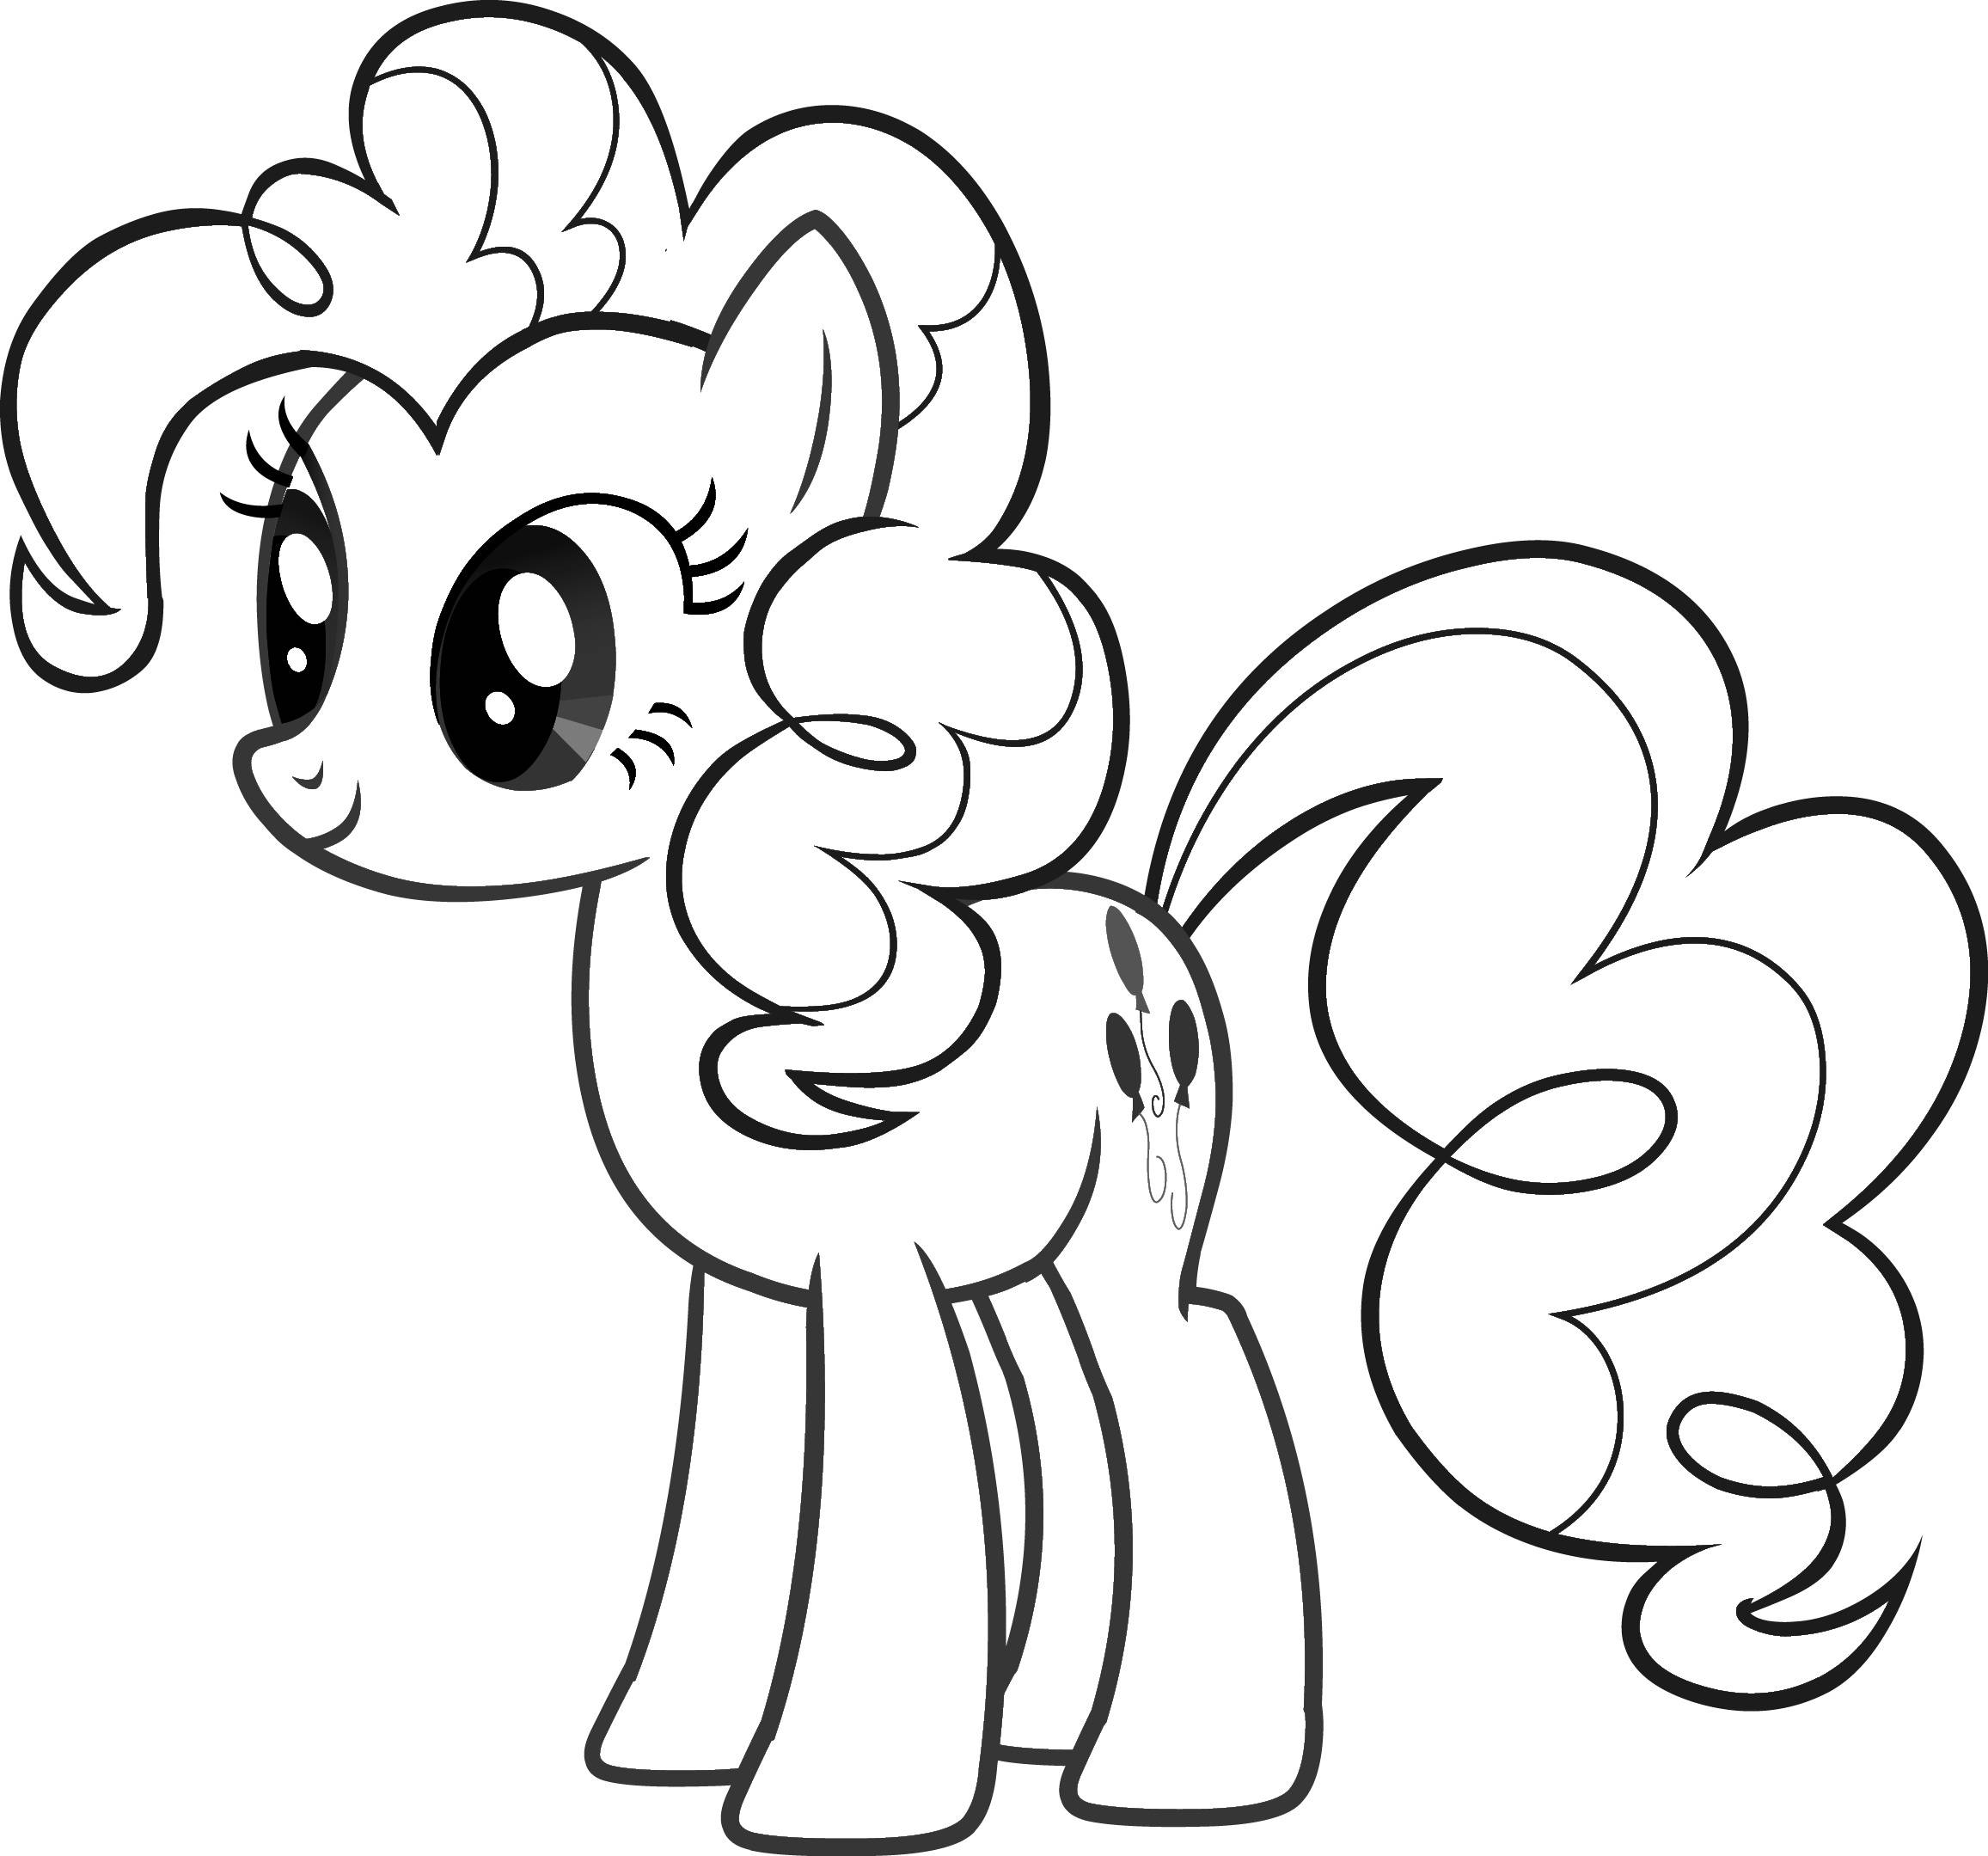 Adult Top Mlp Fim Coloring Pages Images best free printable my little pony coloring pages for kids images